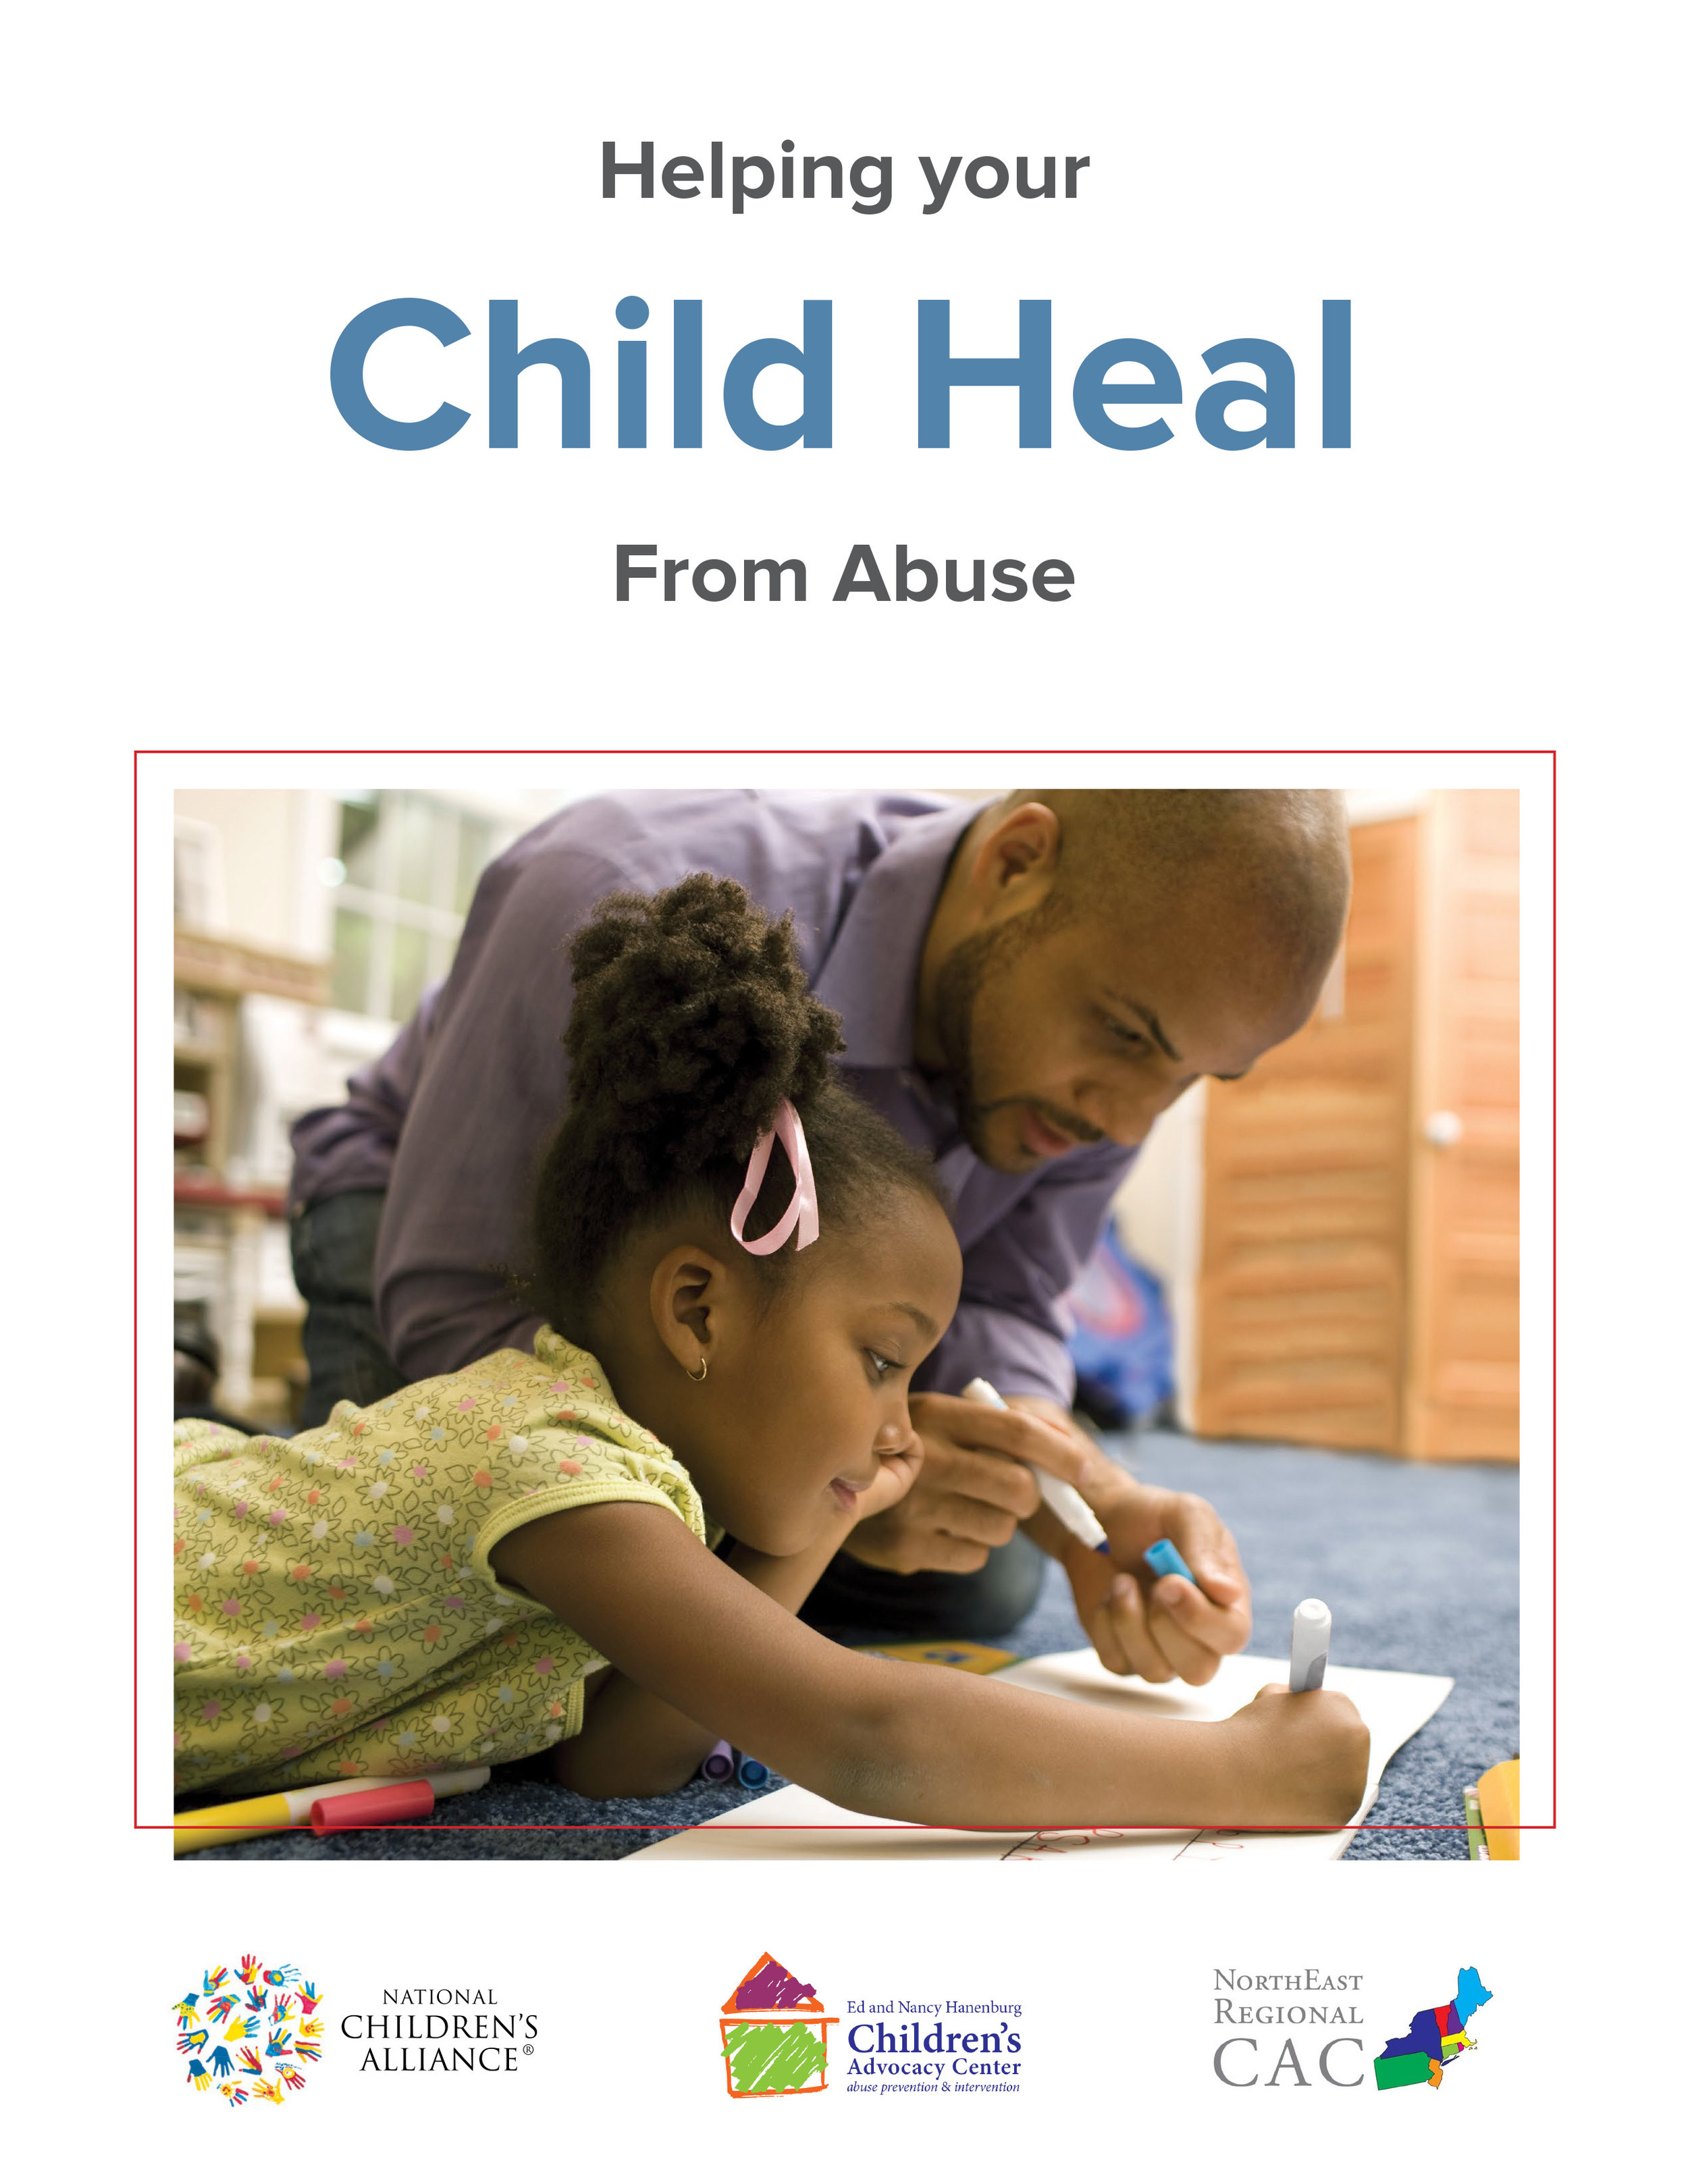 NCA Helping Your Children Heal From Abuse Brochure June2015 our logo-1 copy - Copy.jpg